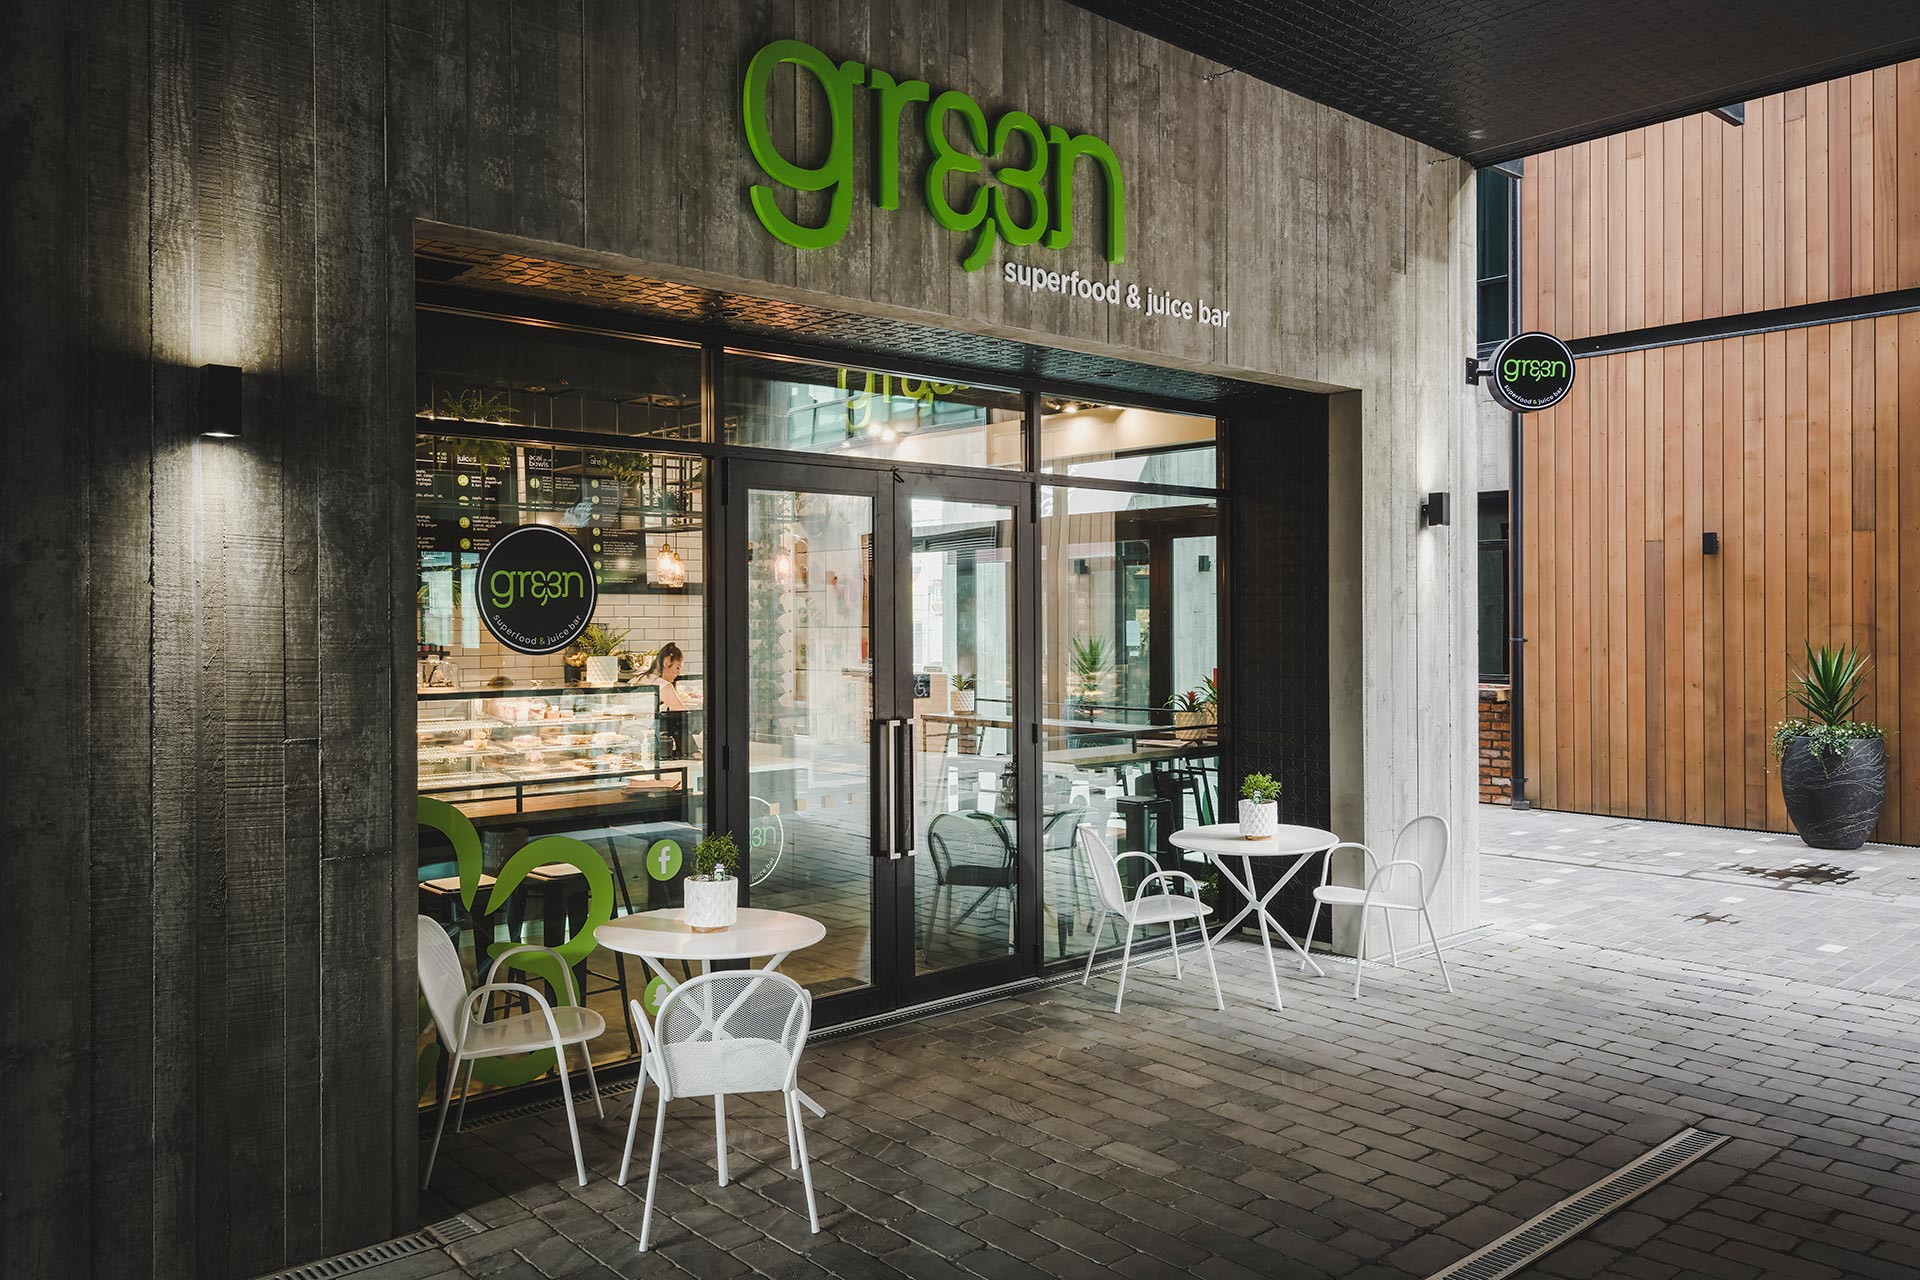 Nelson gre3n superfood juice bar christchurch for Superfood bar